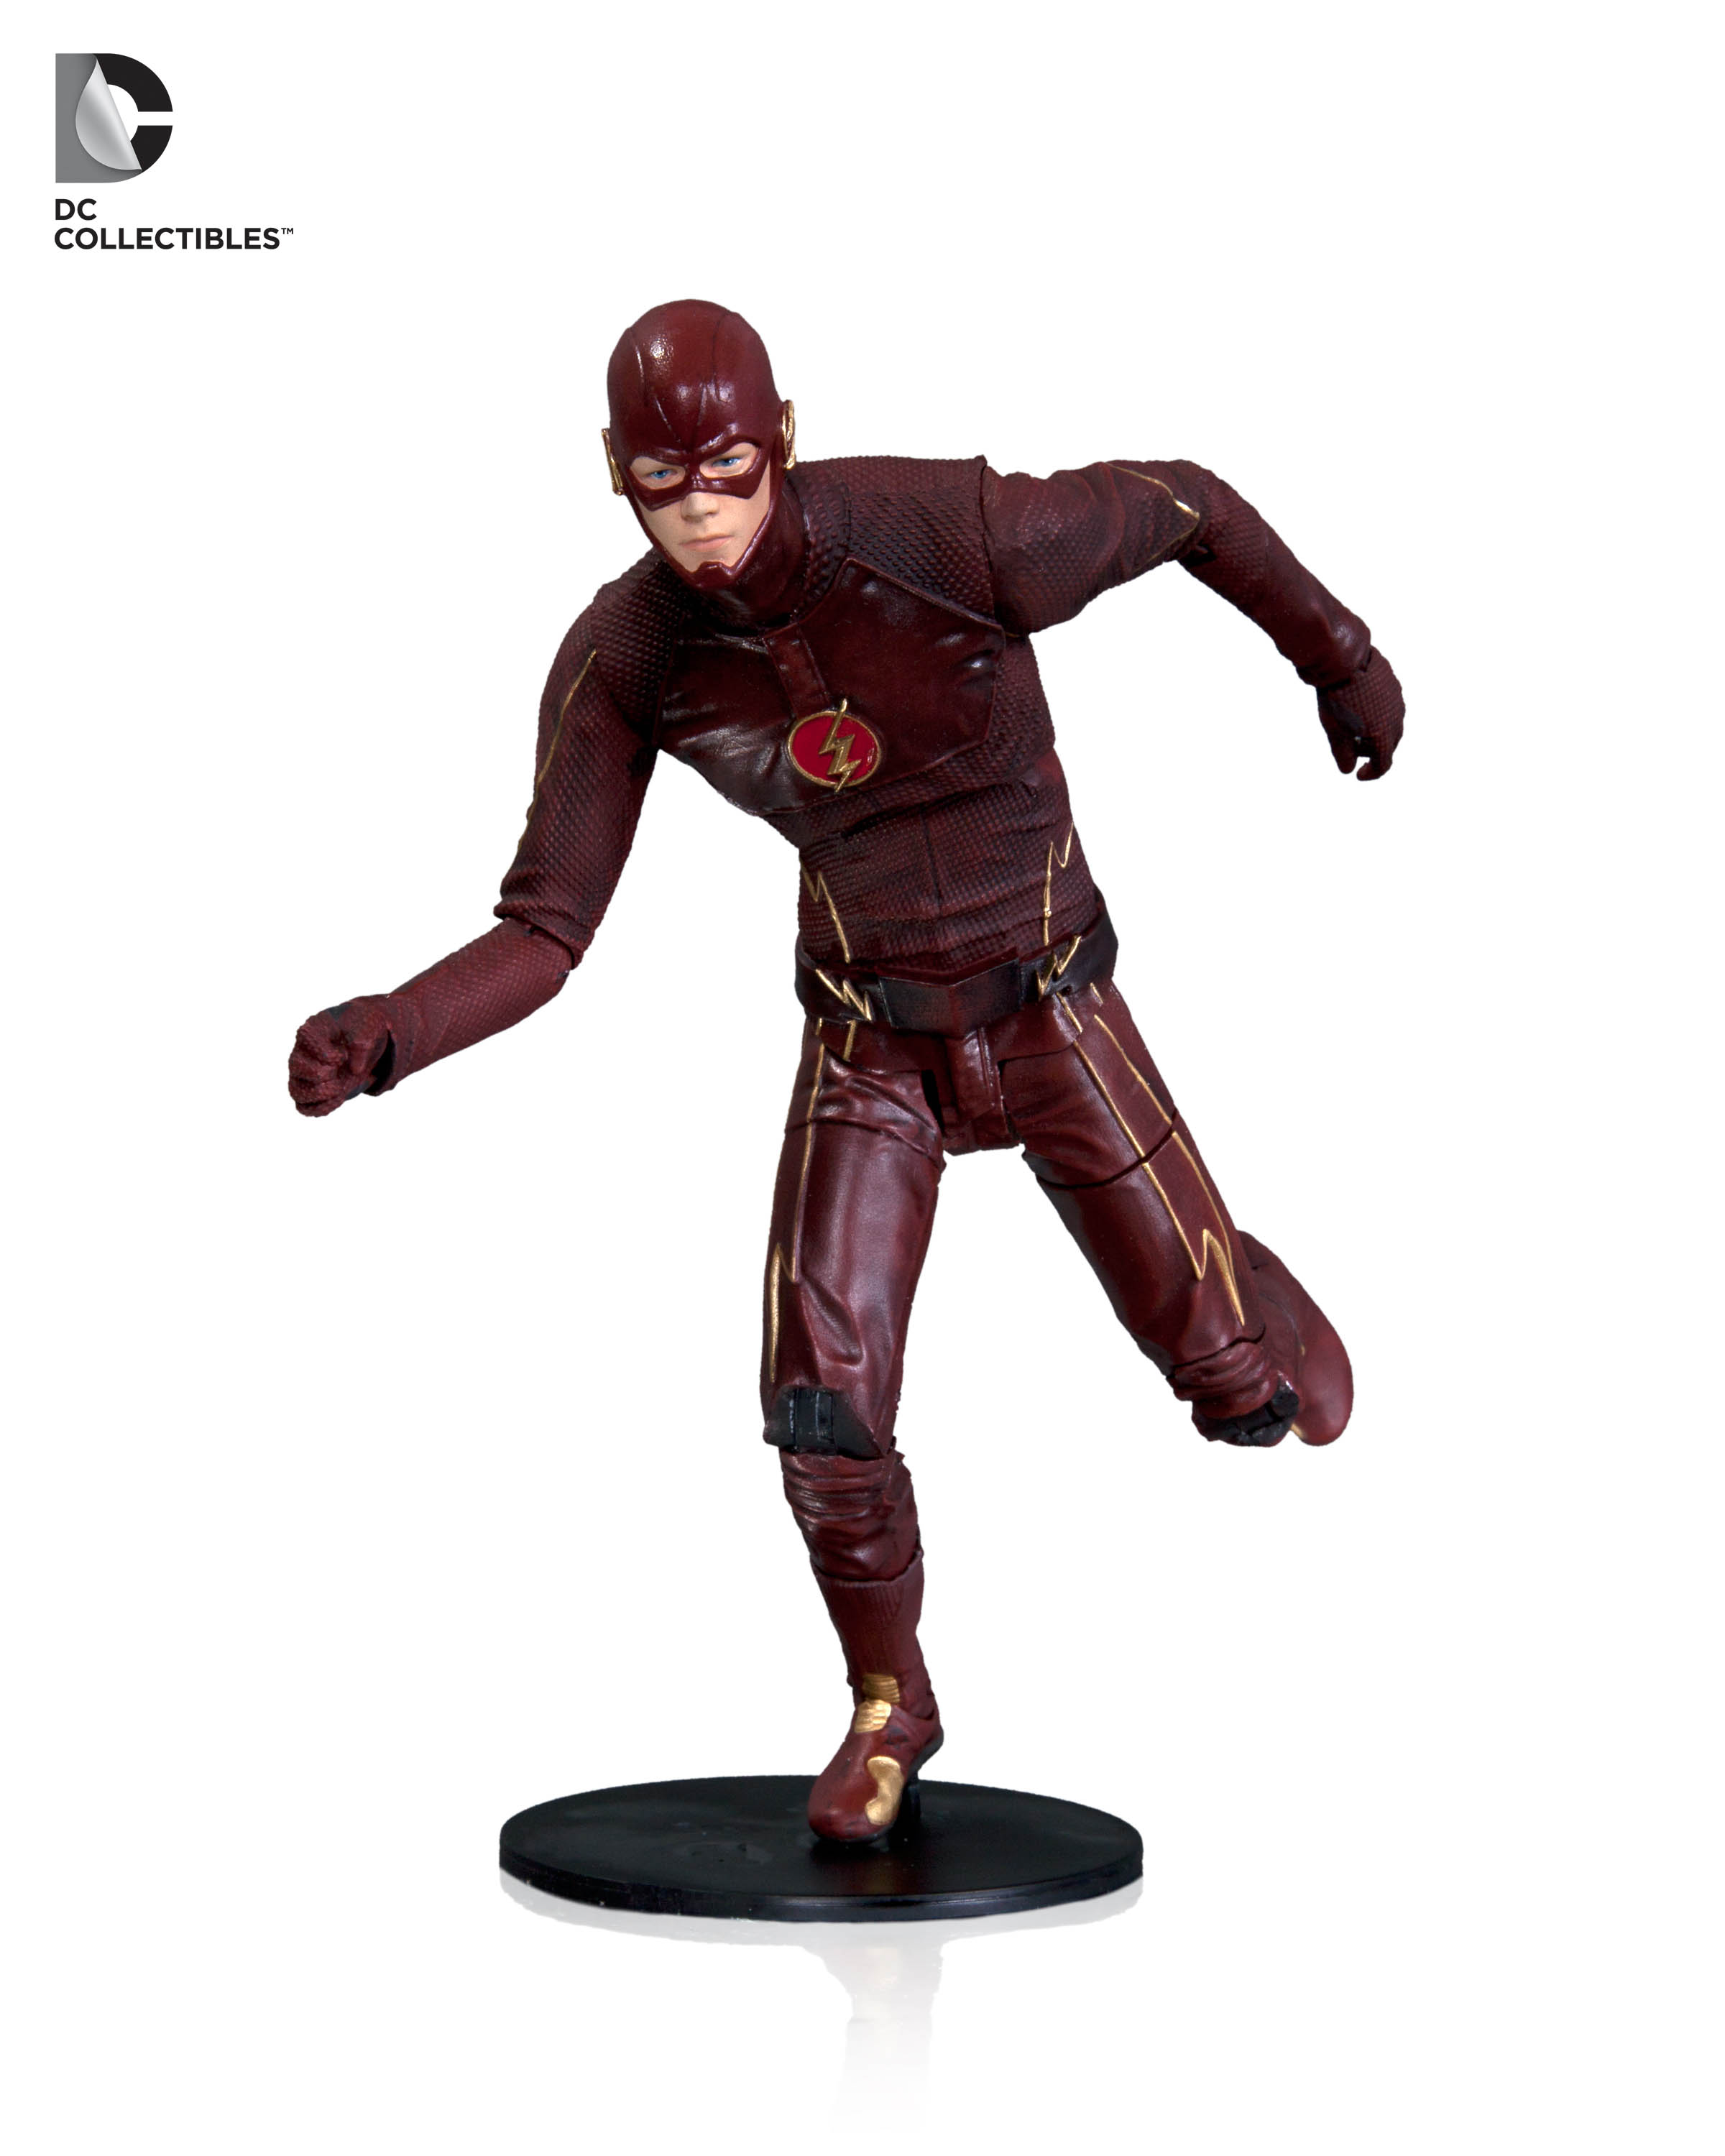 The-Flash-TV-Series-The-Flash-Figure | The Toy Scene: thetoyscene.com/2014/07/11/dc-collectibles-sdcc/the-flash-tv-series...